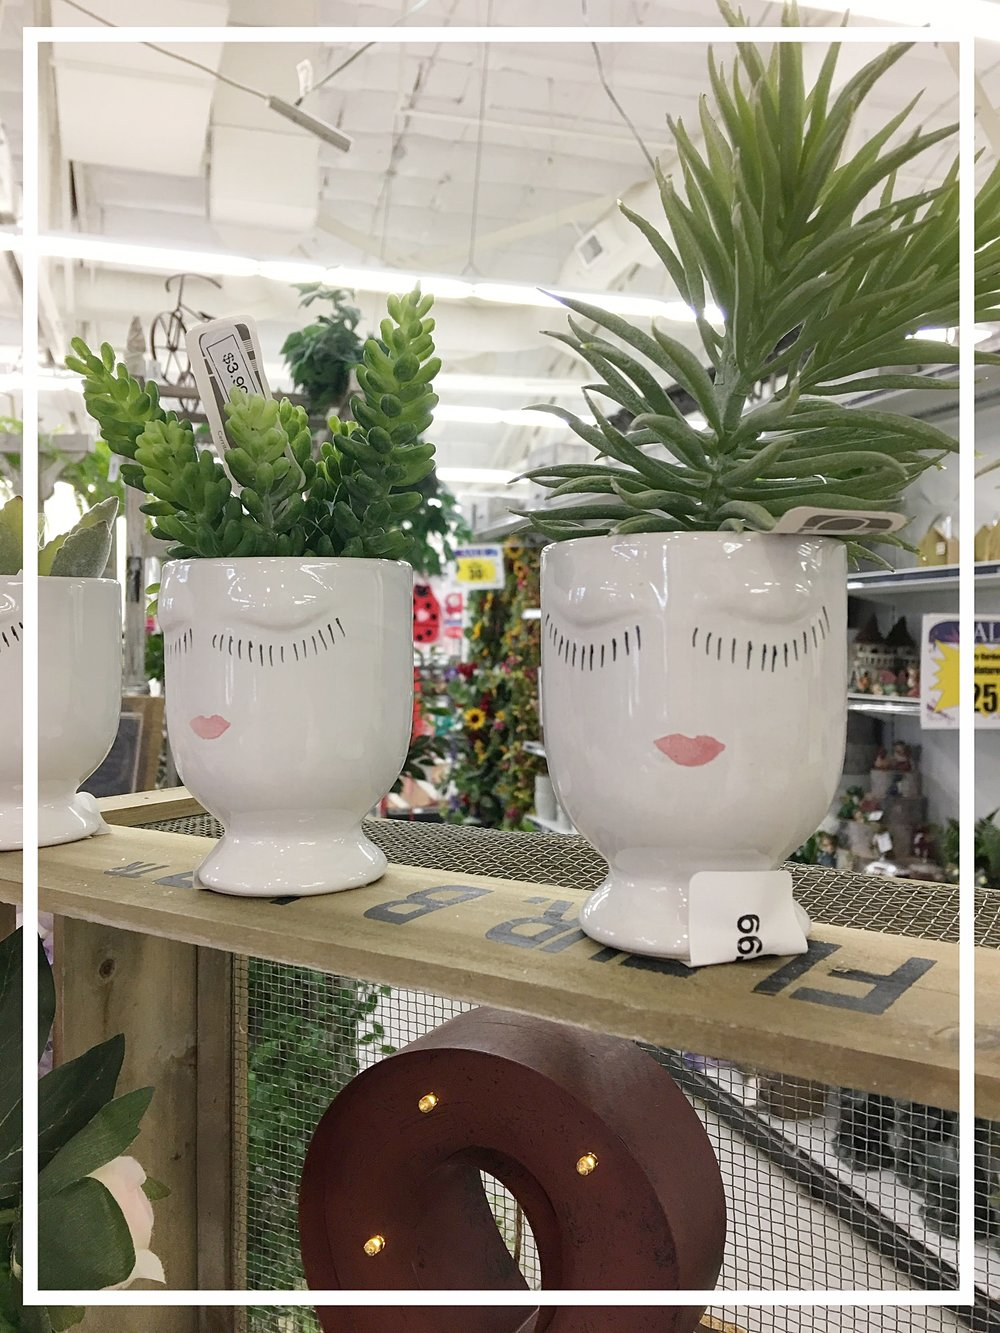 Planter-ly ladies